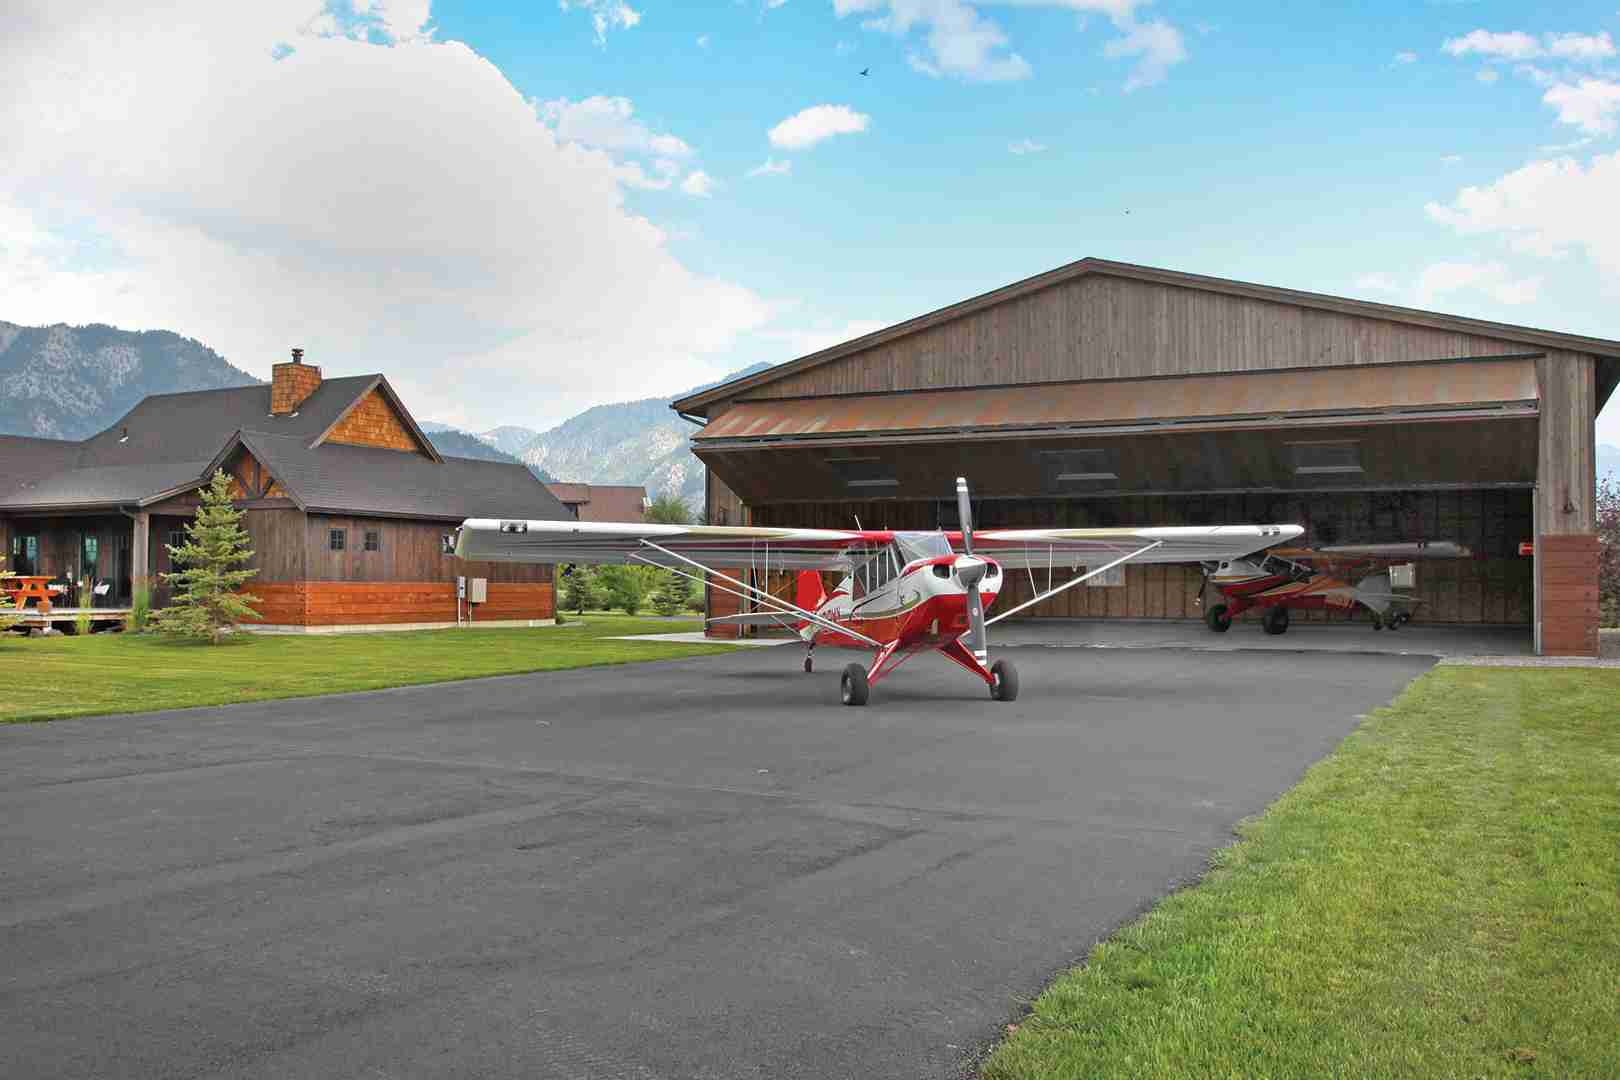 rural hangar plane in front of bifold door